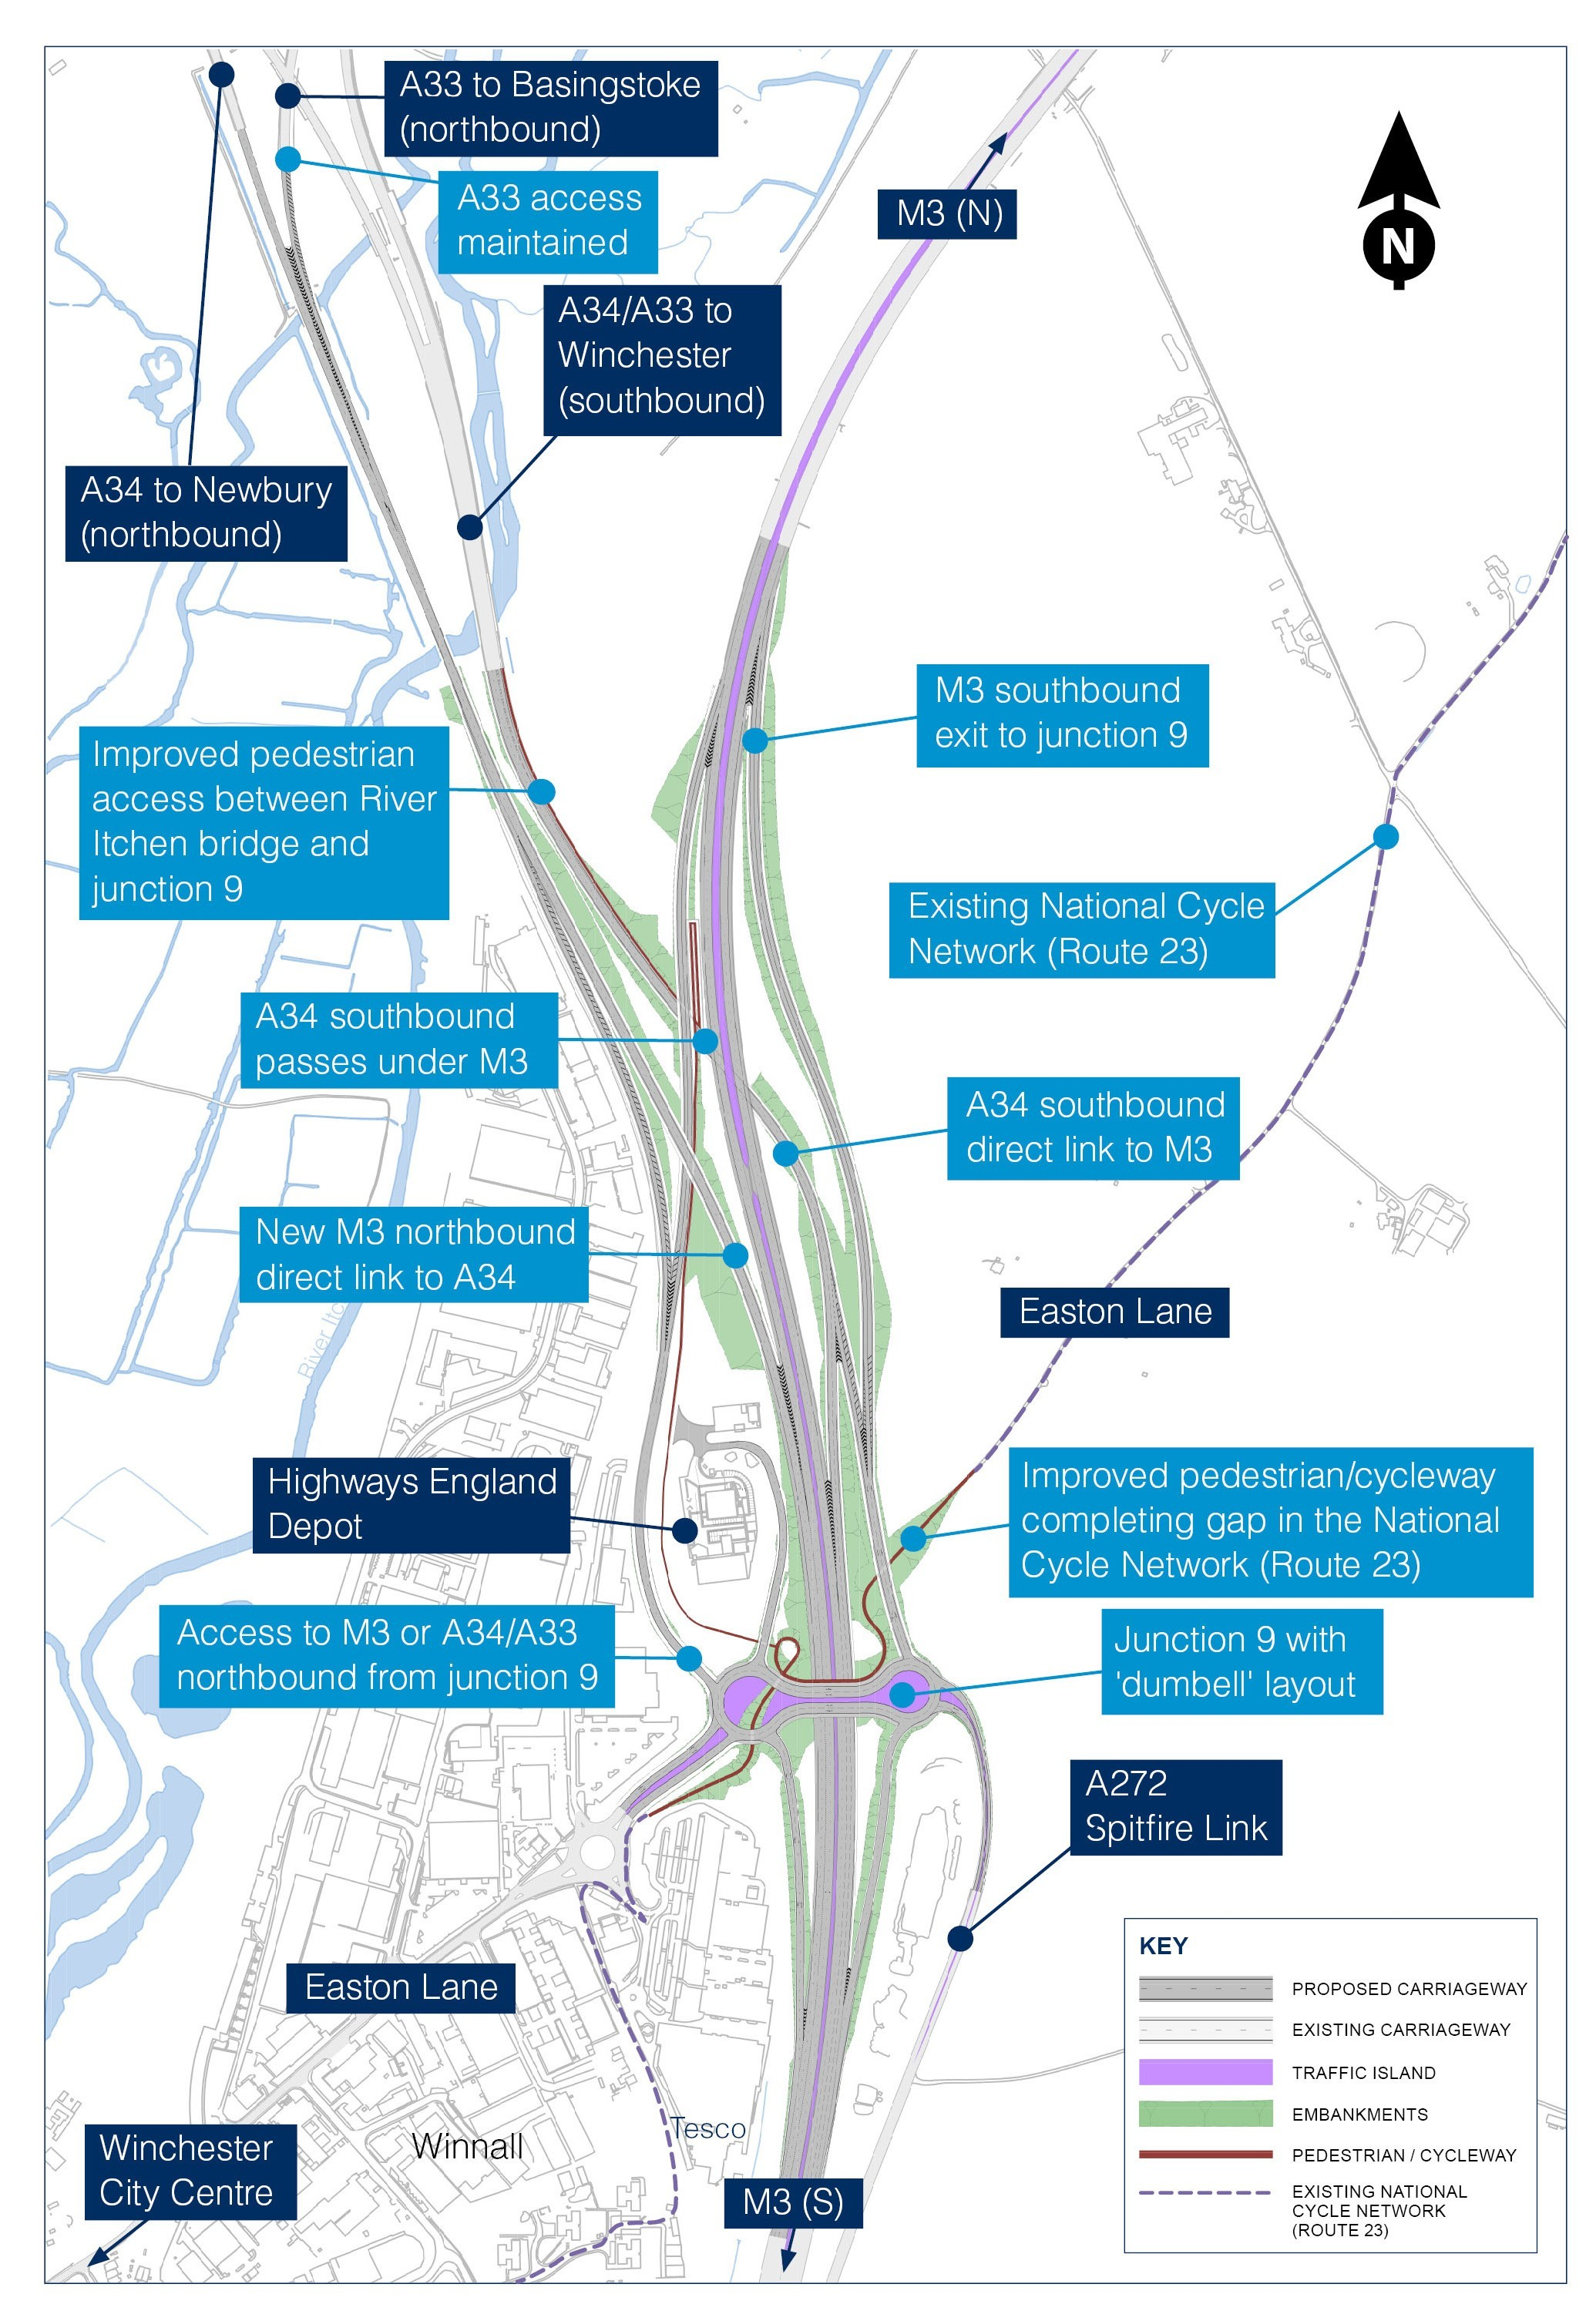 Proposal for Junction 9 of M3. Image by Highways England